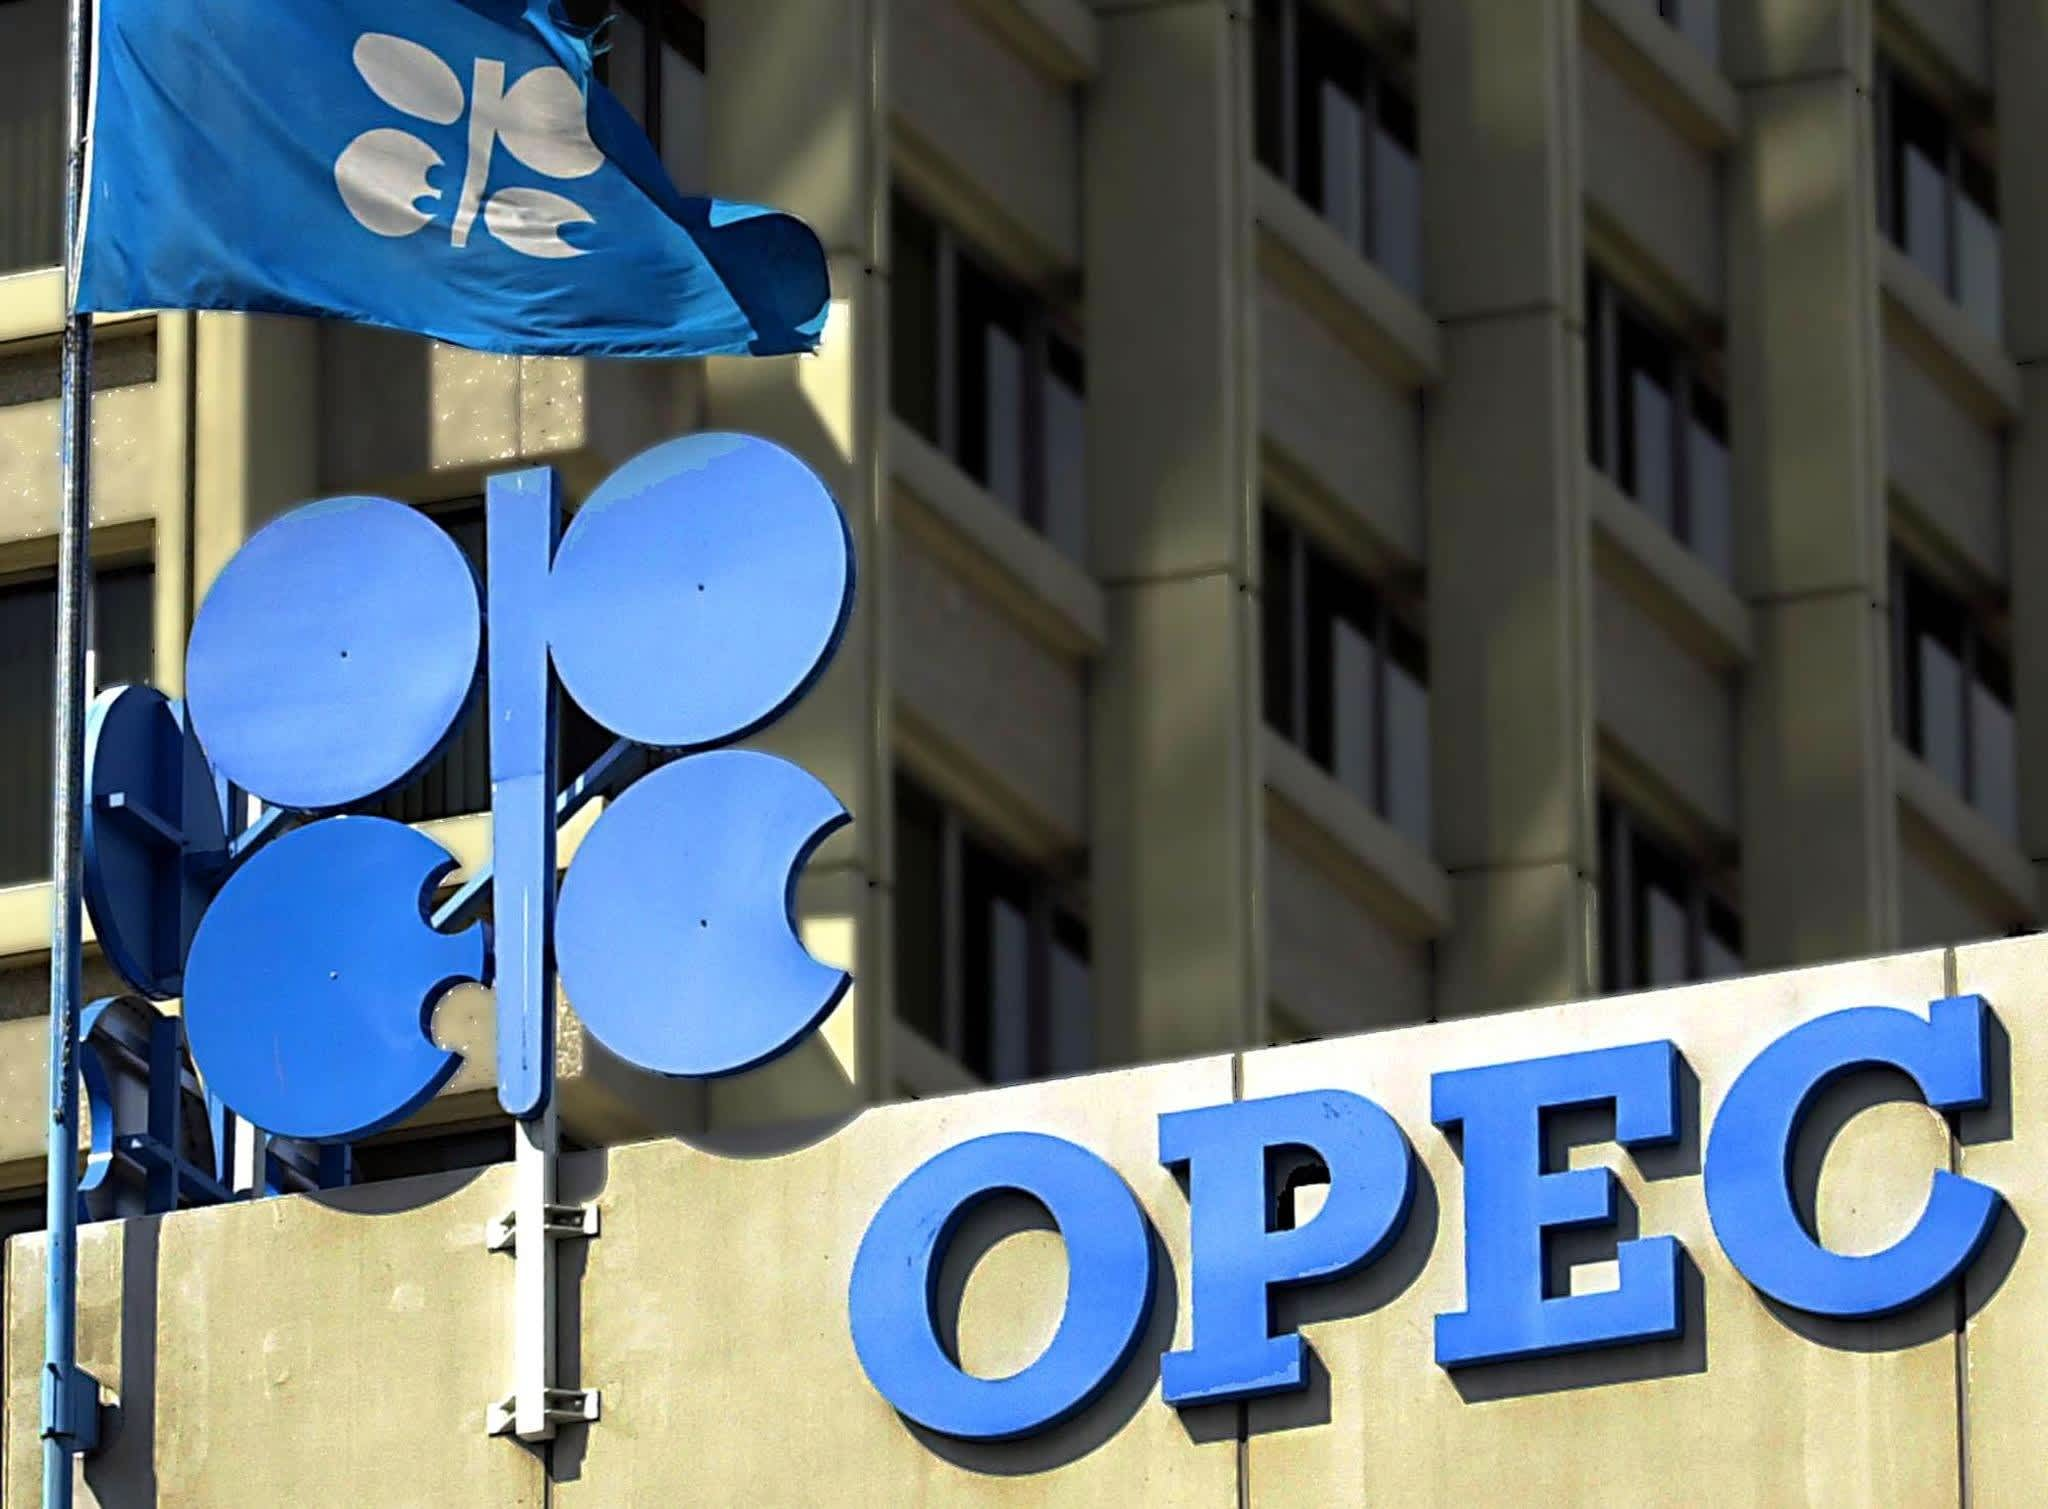 https://fm.cnbc.com/applications/cnbc.com/resources/img/editorial/2017/05/12/104466181-OPEC_flag_sign.jpg?v=1494593072